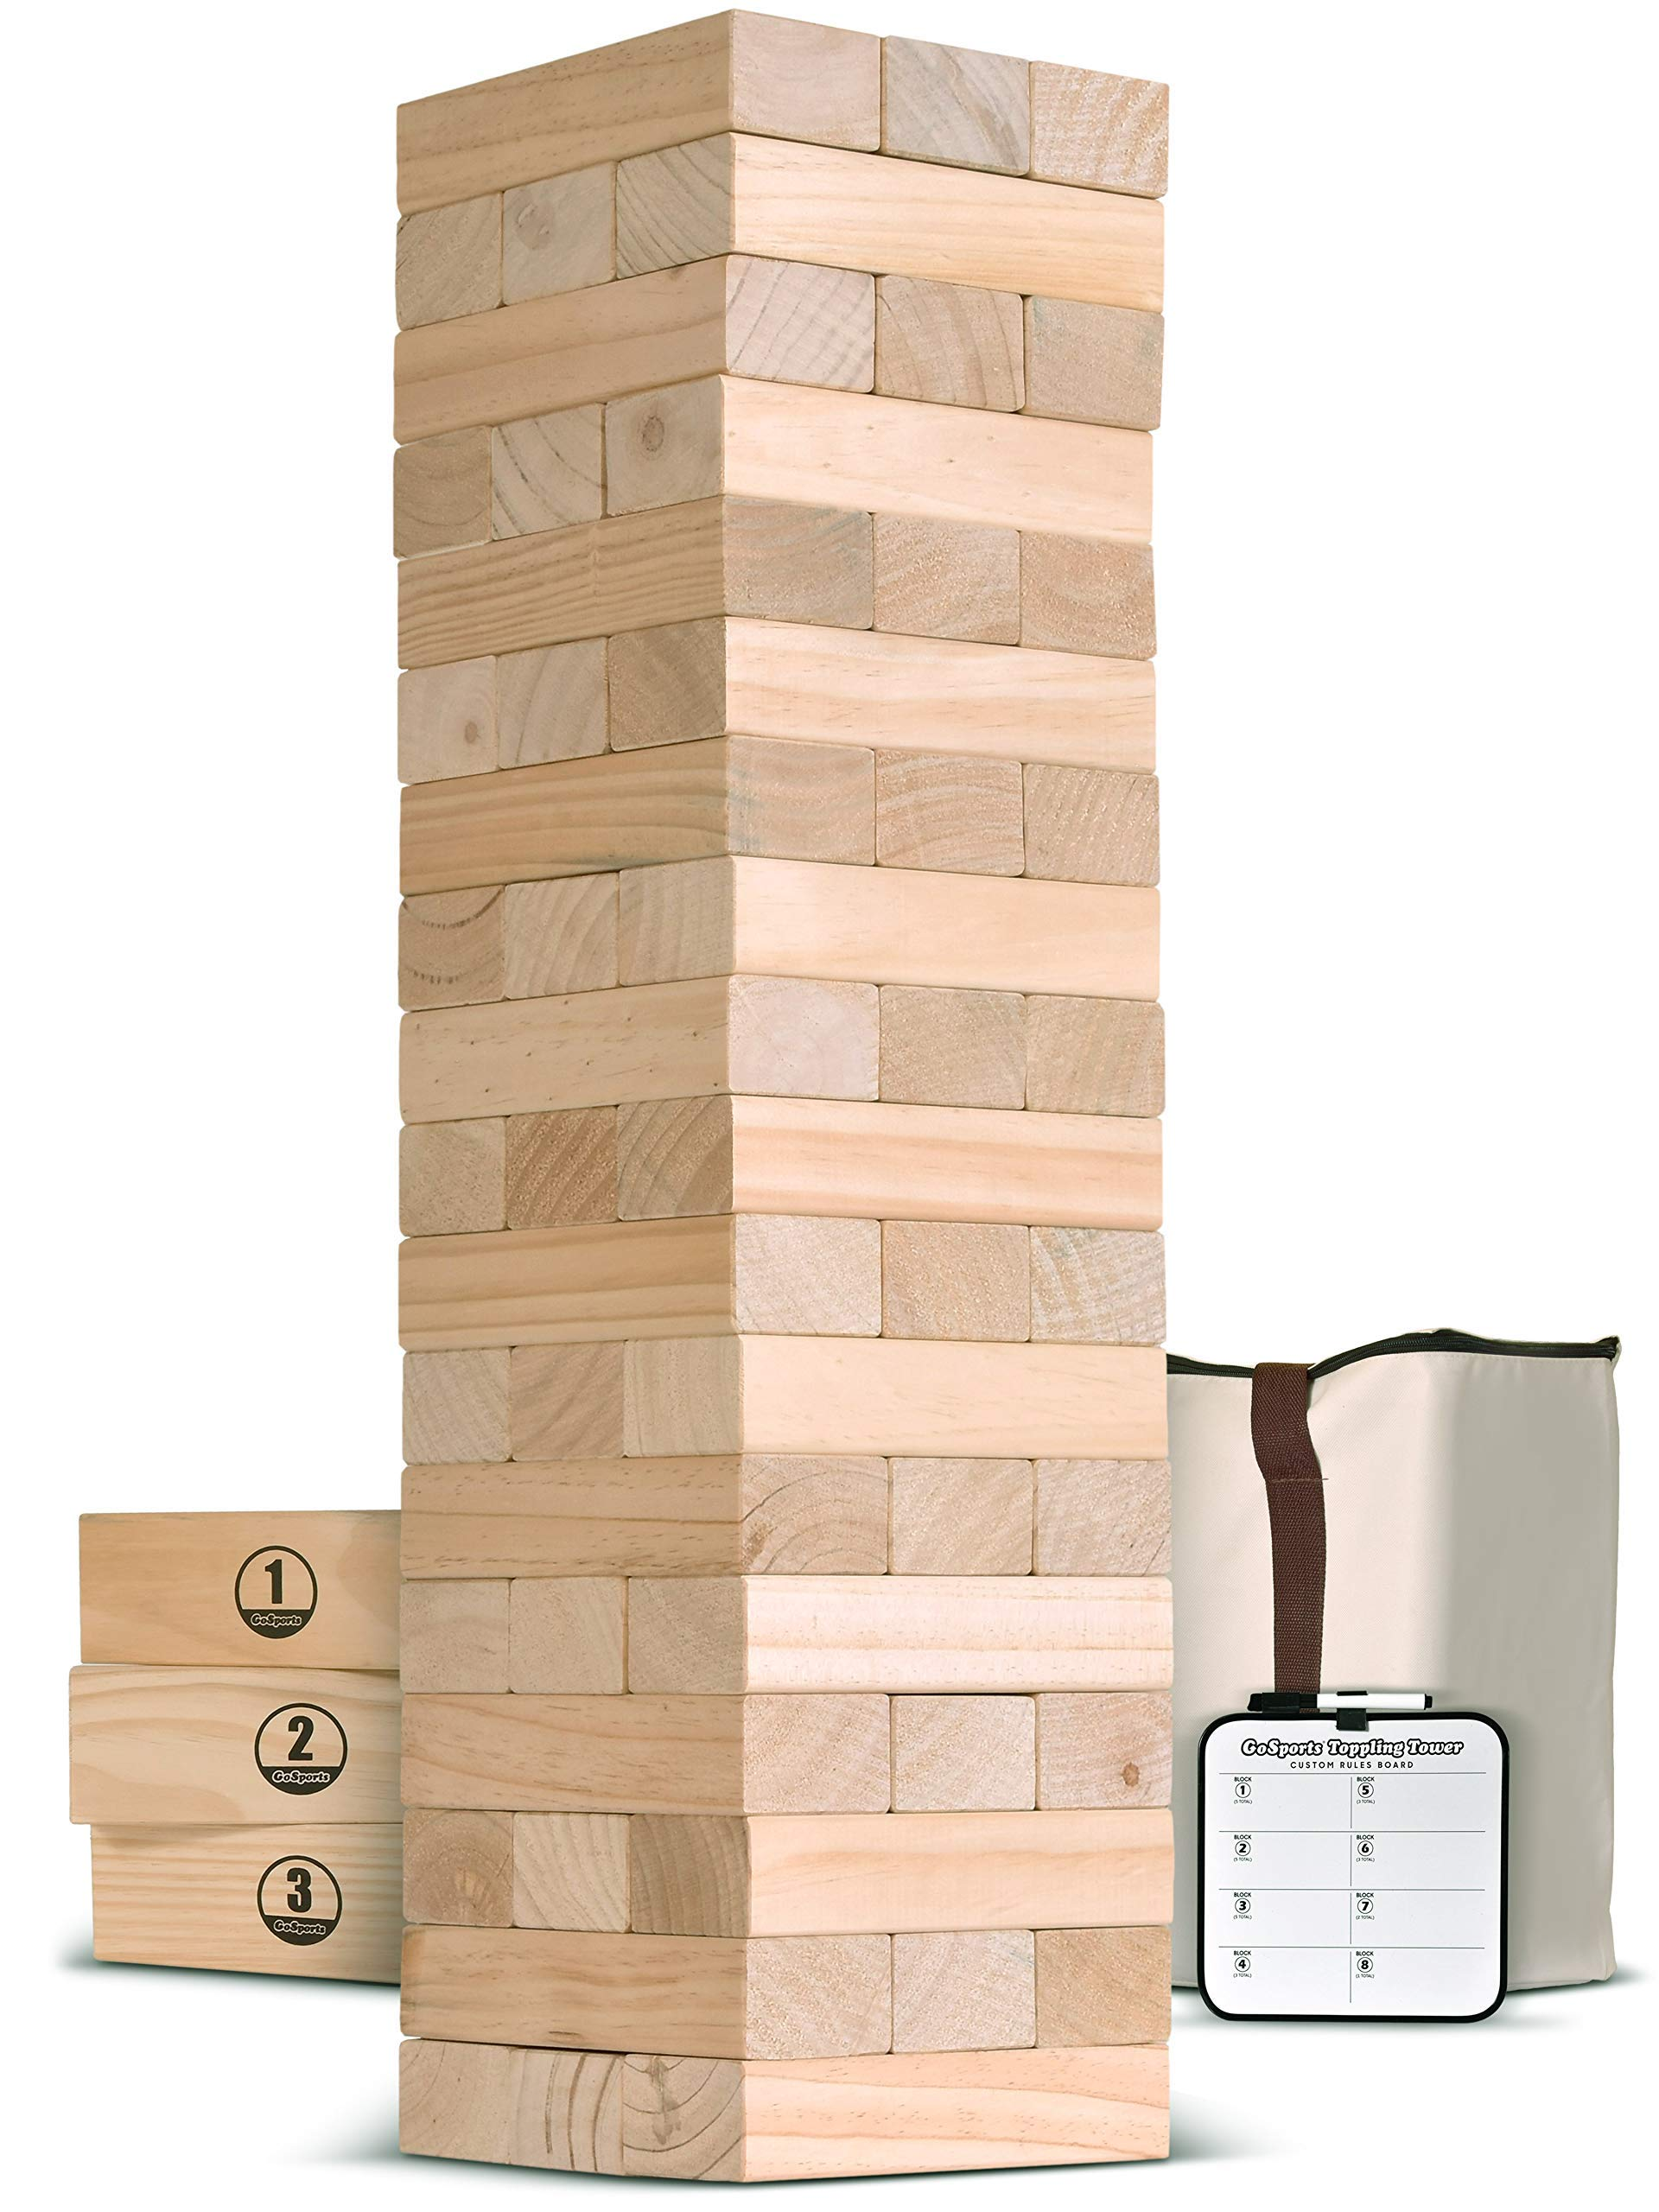 GoSports Giant Wooden Toppling Tower (Stacks to 5+ feet) | Includes Bonus Rules with Gameboard | Made from Premium Pine Blocks (Renewed)